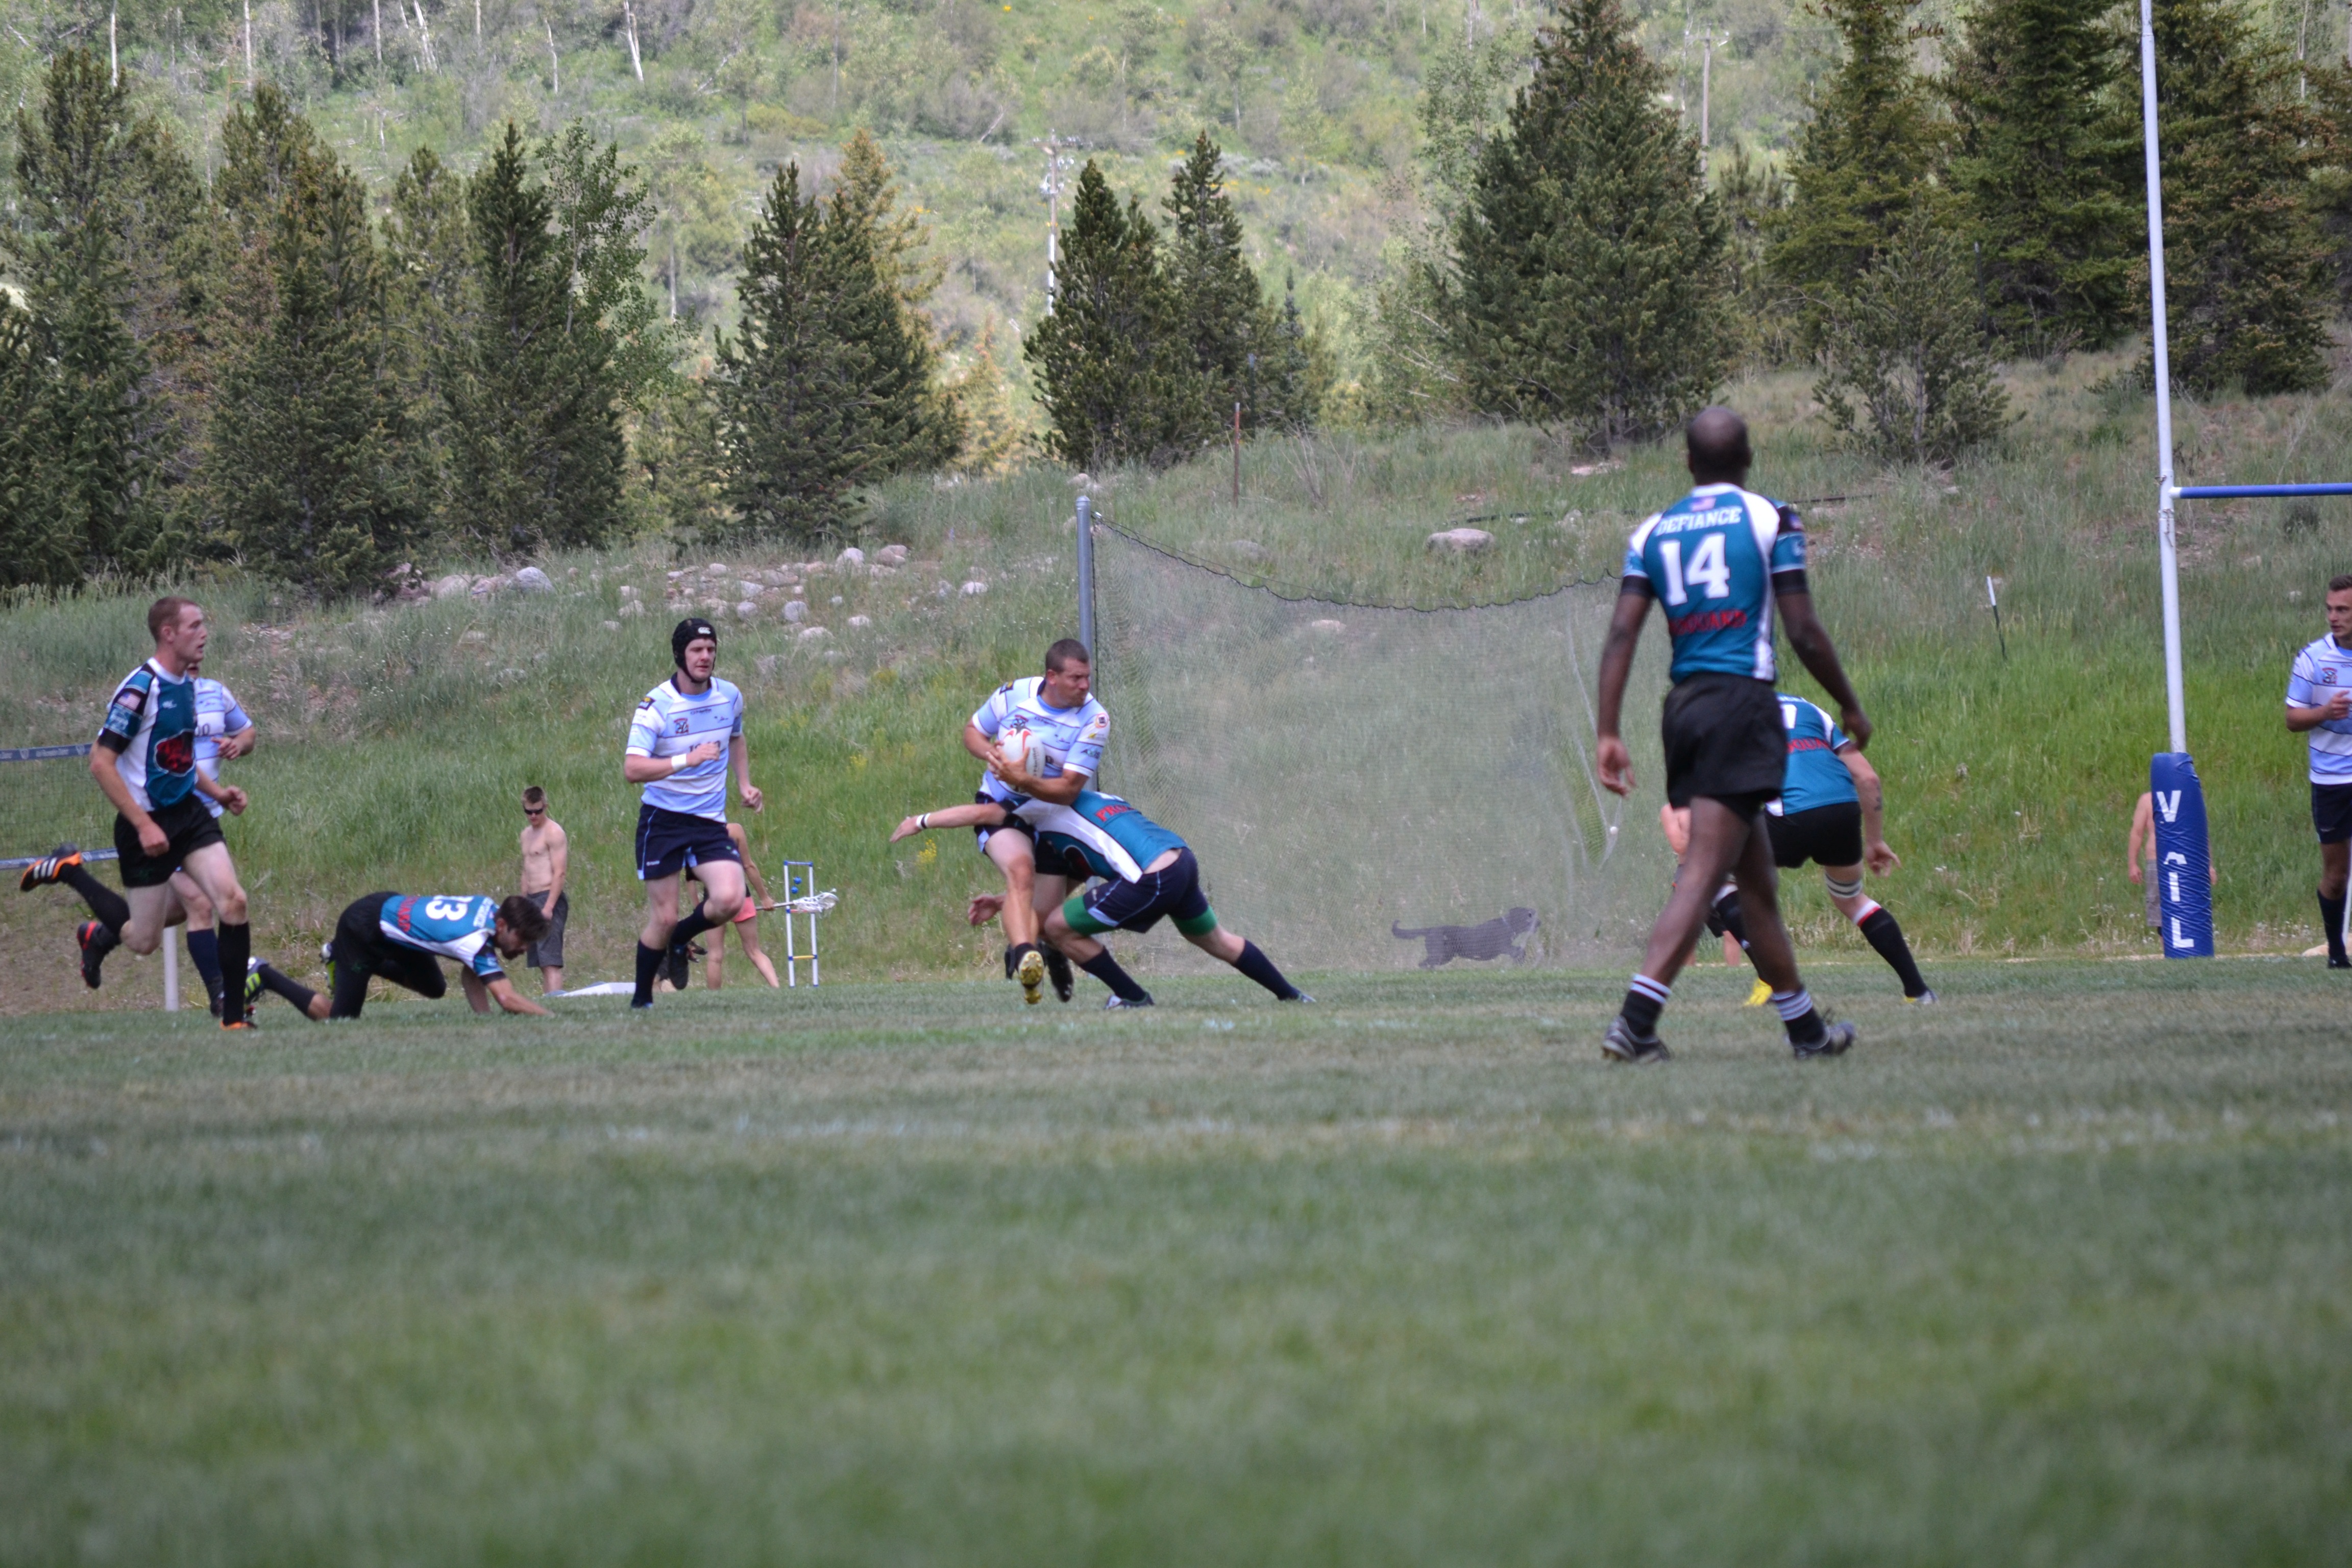 Vail Vs Glenwood 6222013 607